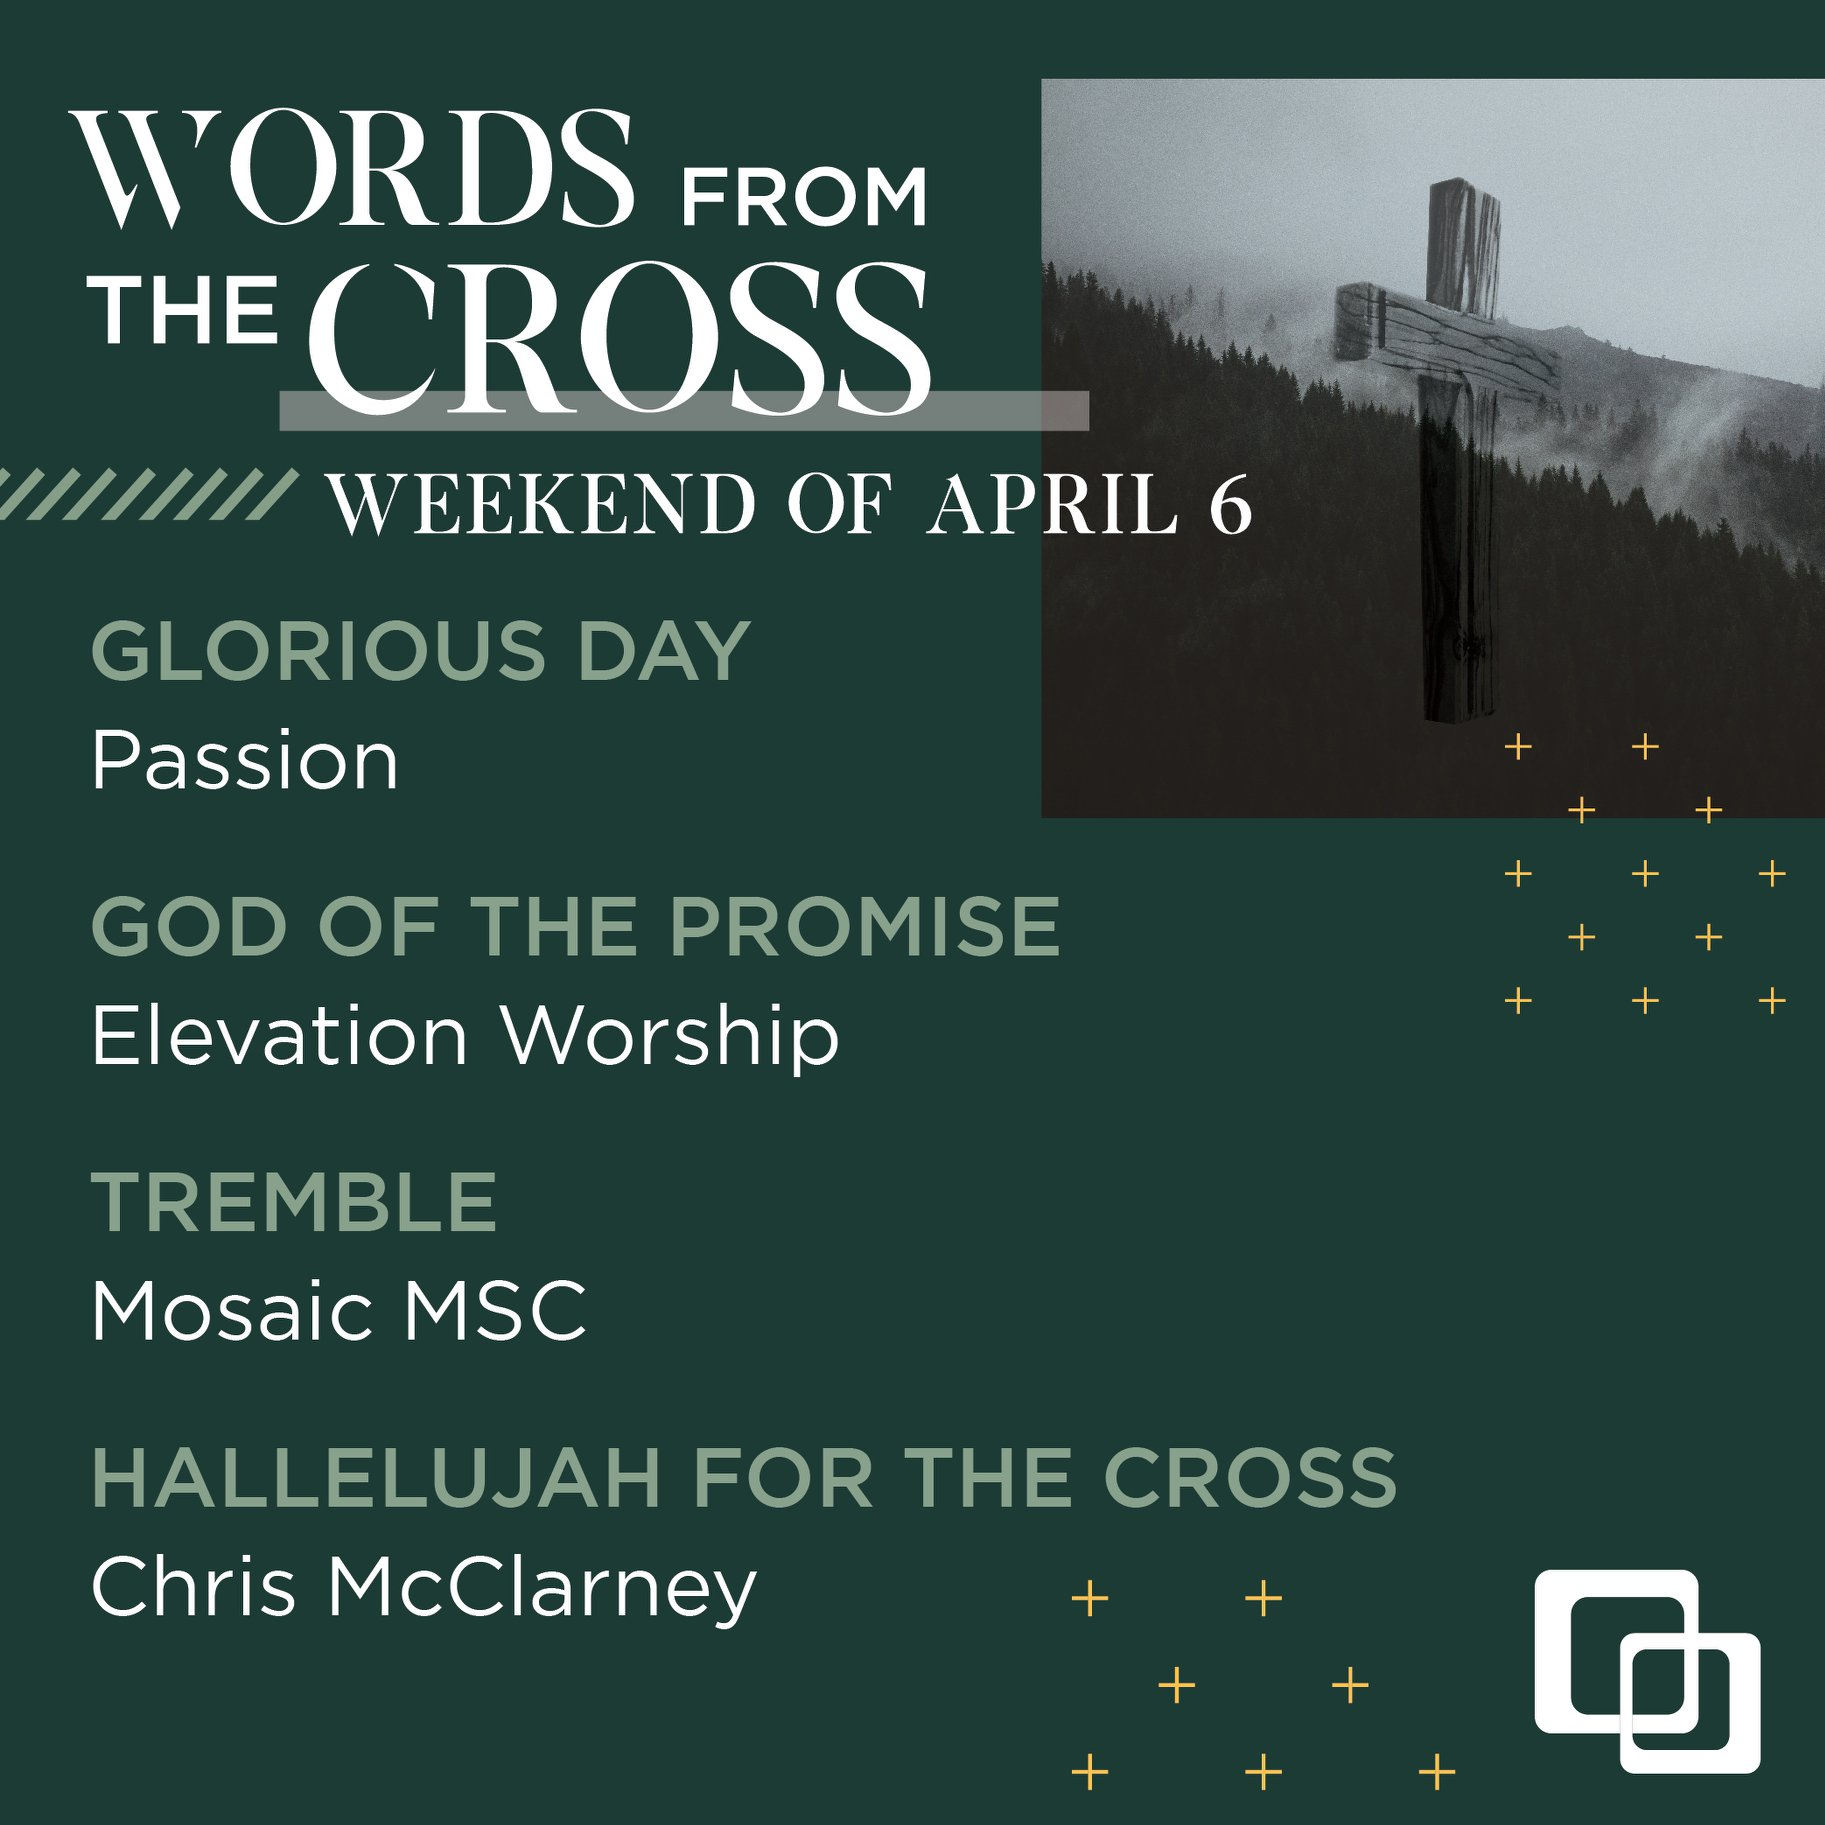 Words from the Cross week 3 set list - compassion